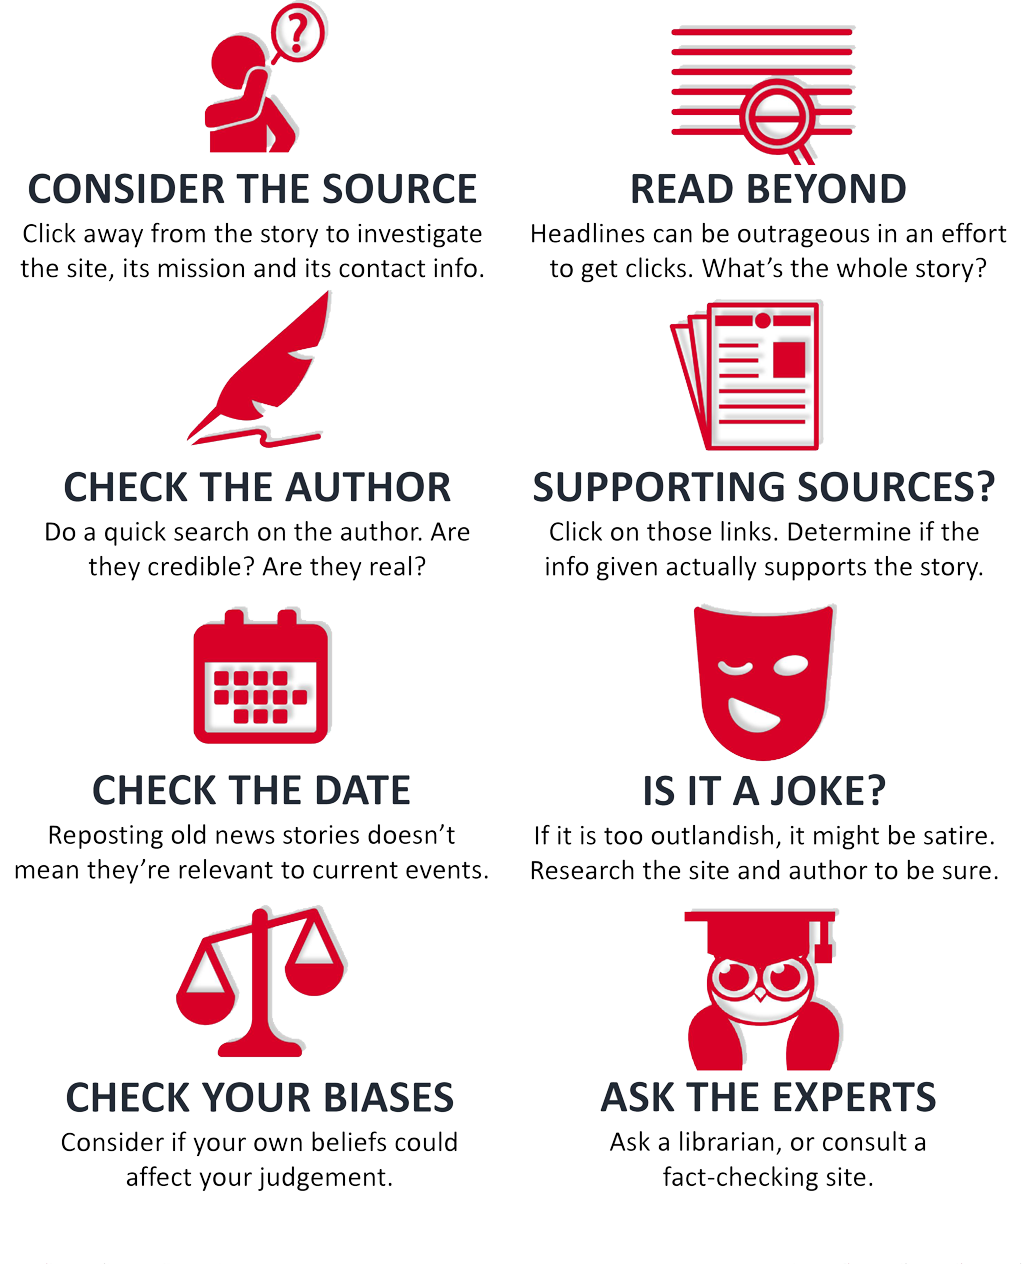 How to Spot Fake News infographic illustrates eight ways to spot fake news, including: consider the source; read beyond the headlines; check the author's credibility; check supporting sources; check the date for currency; is it a joke; check your biases, and ask the experts to fact-check.